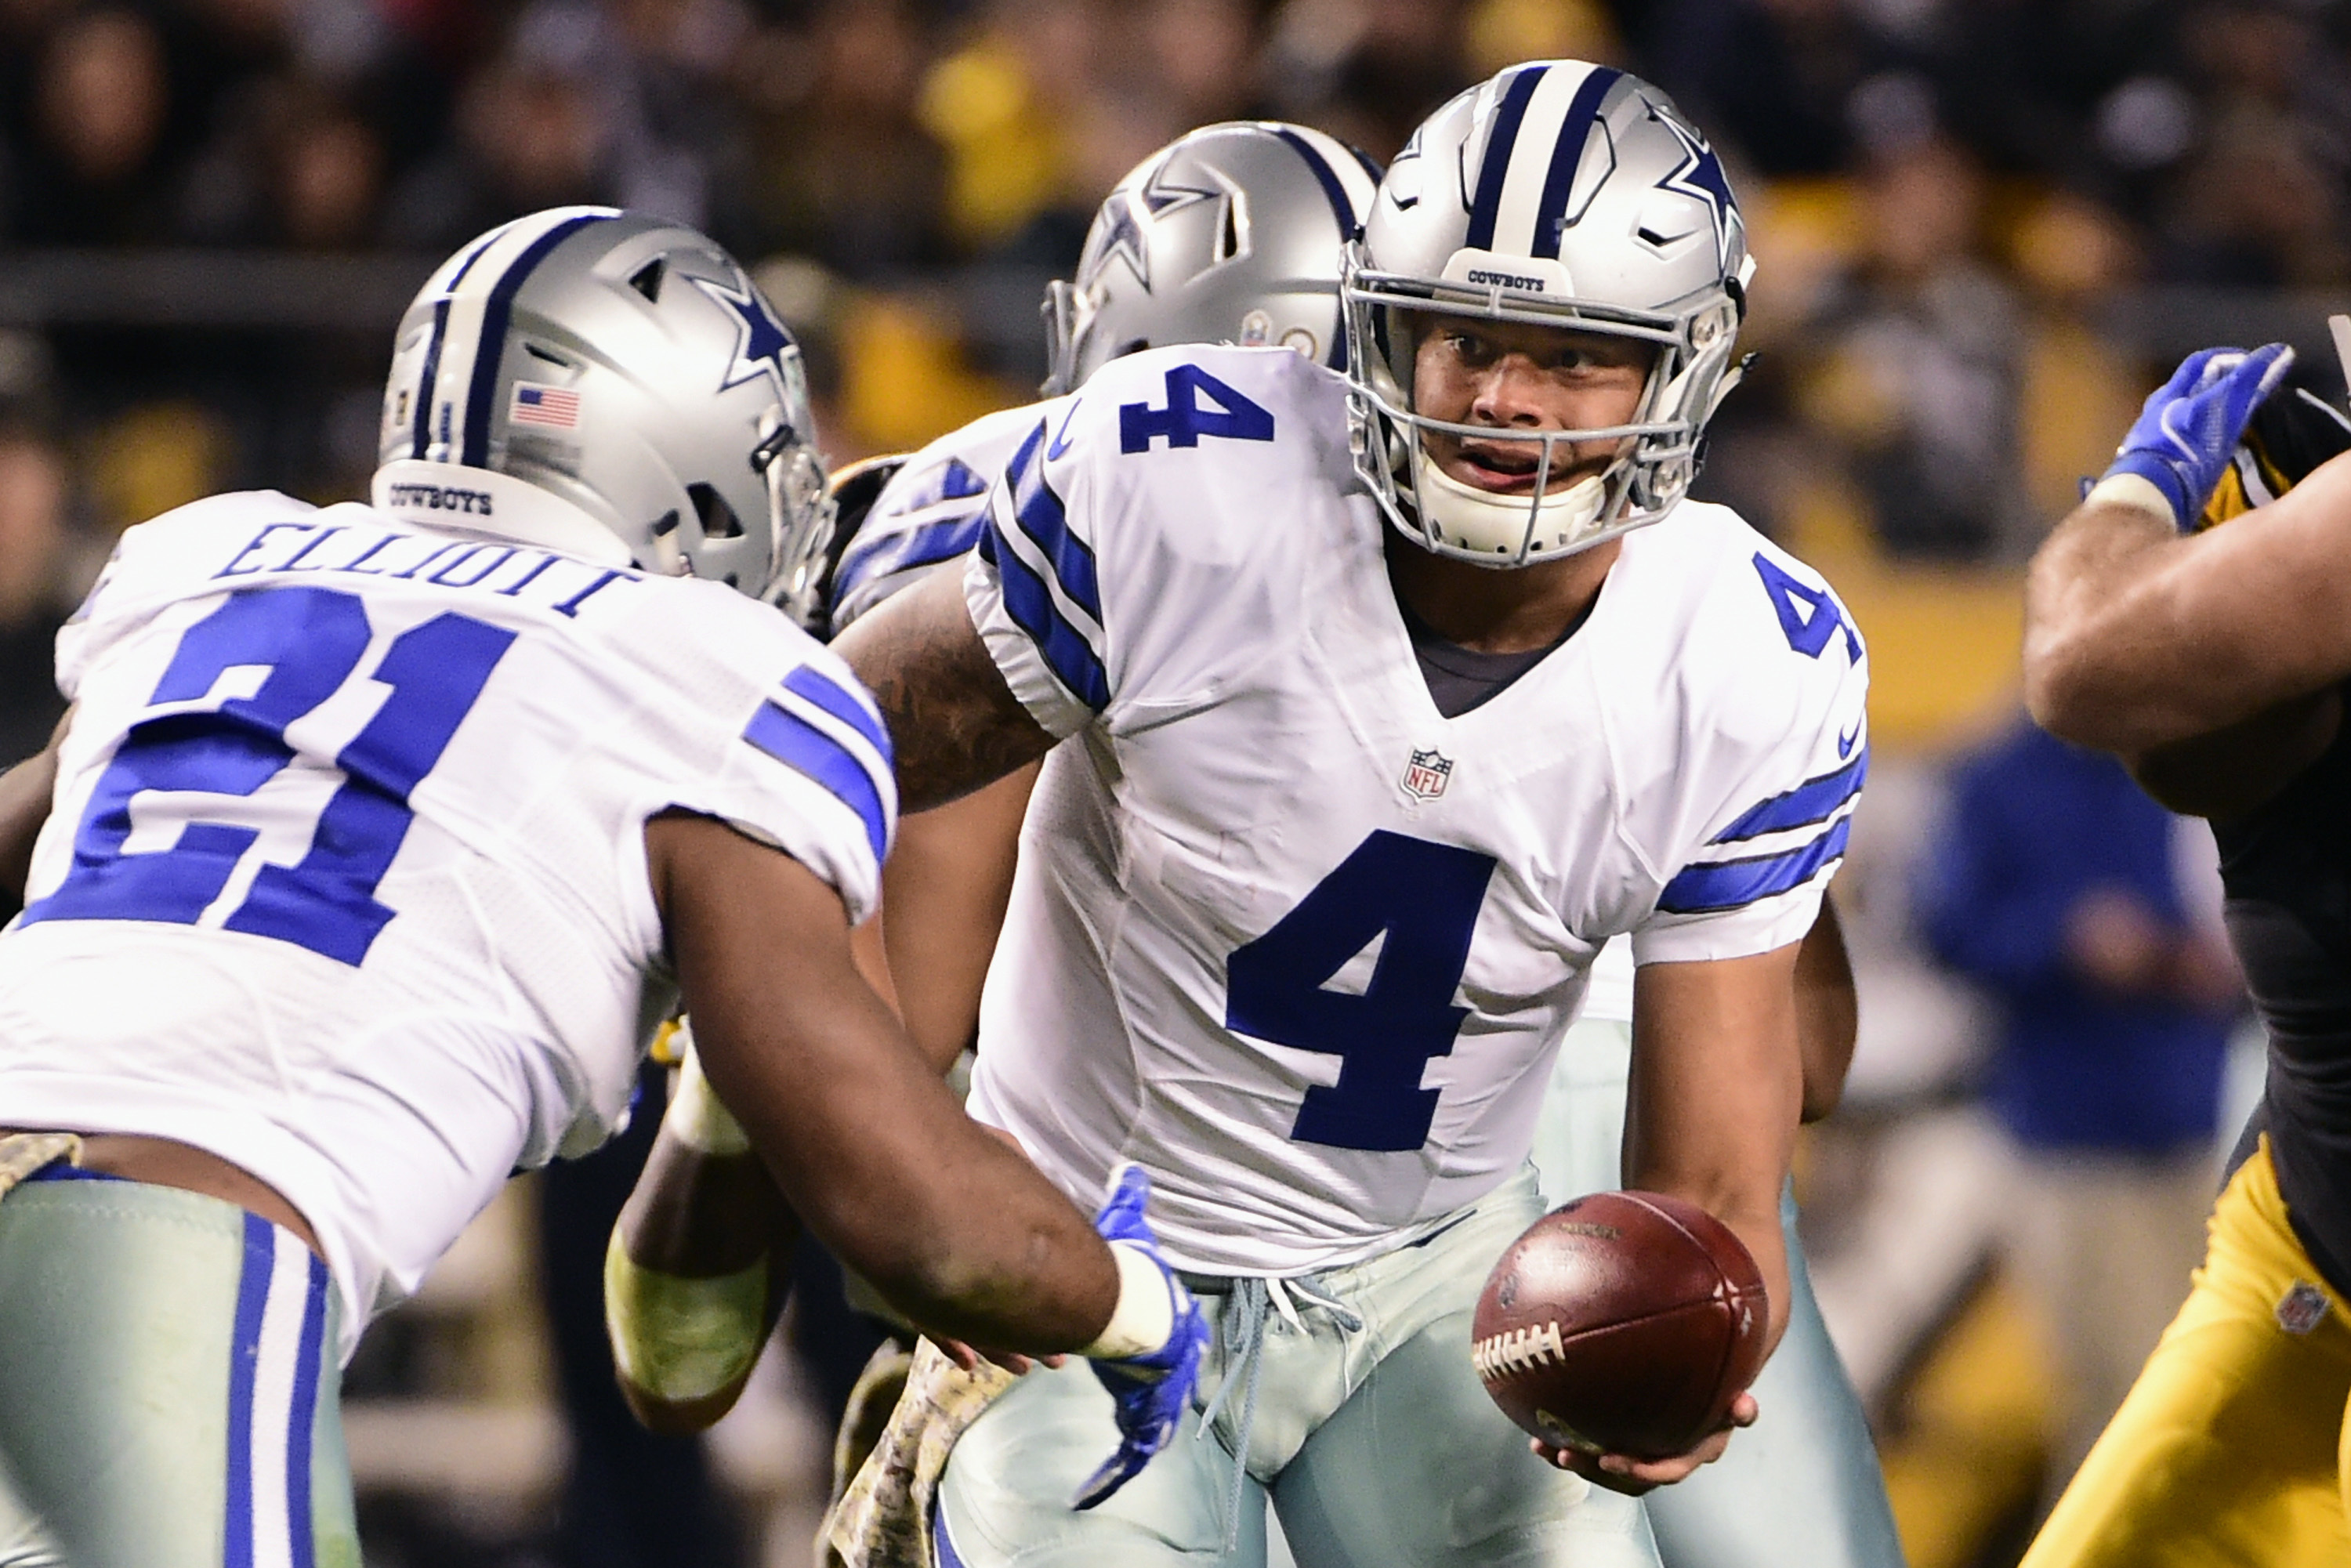 Dallas Cowboys quarterback Dak Prescott (4) hands off the Ezekiel Elliott (21) during the second half of an NFL football game against the Pittsburgh Steelers in Pittsburgh, Sunday, Nov. 13, 2016. (AP Photo/Fred Vuich)